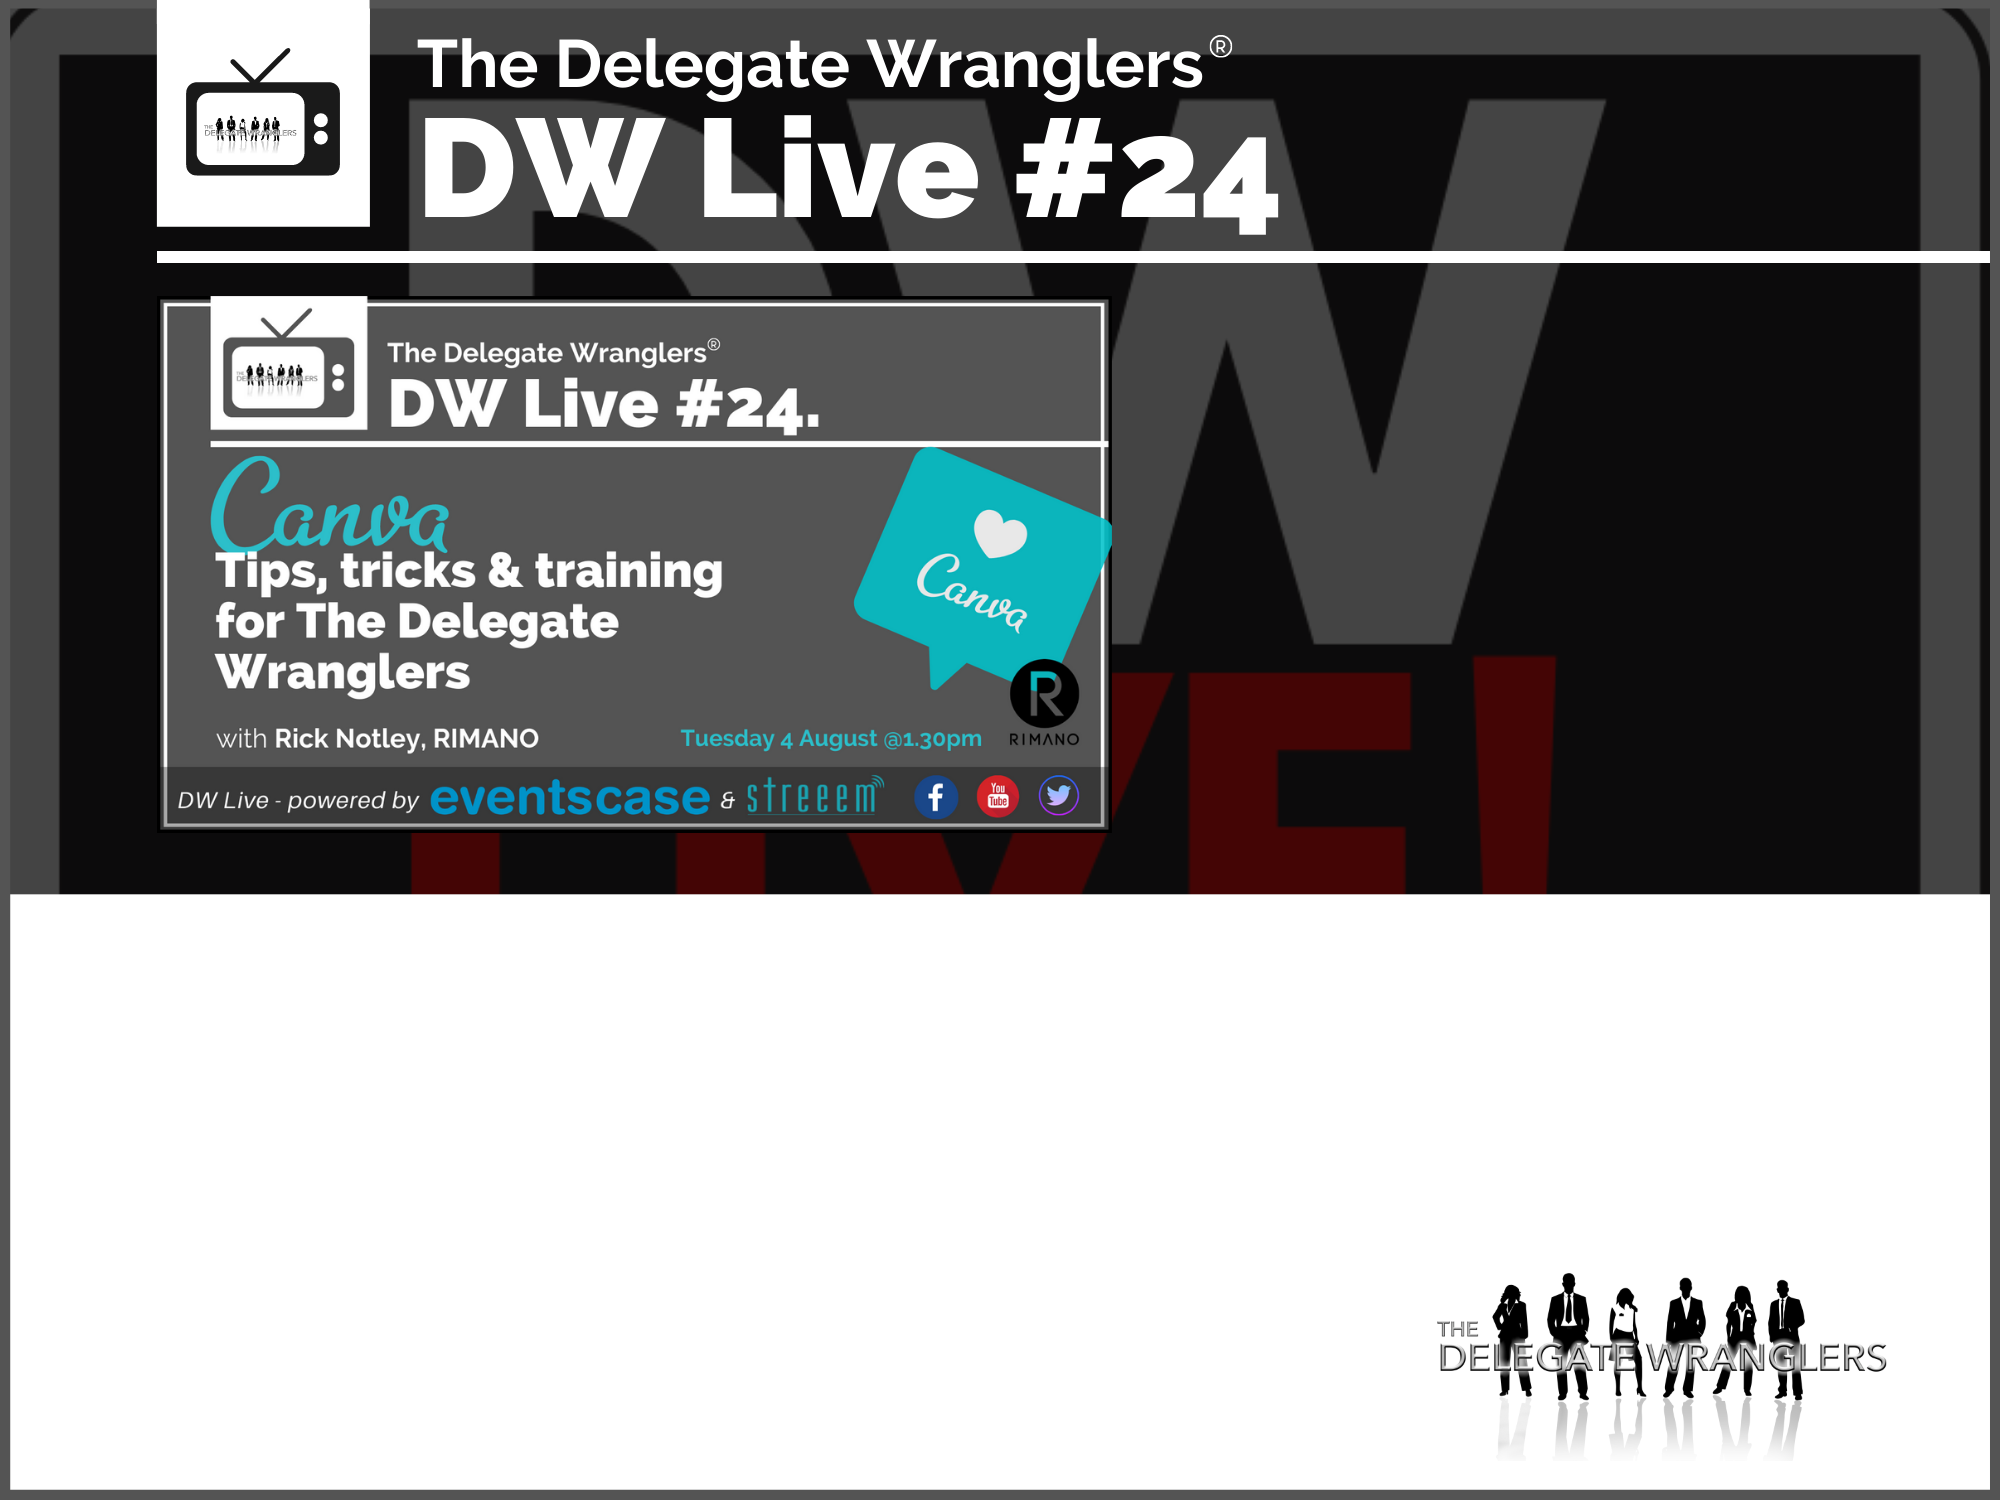 DW Live #24 - Canva - Tips, Tricks & Training